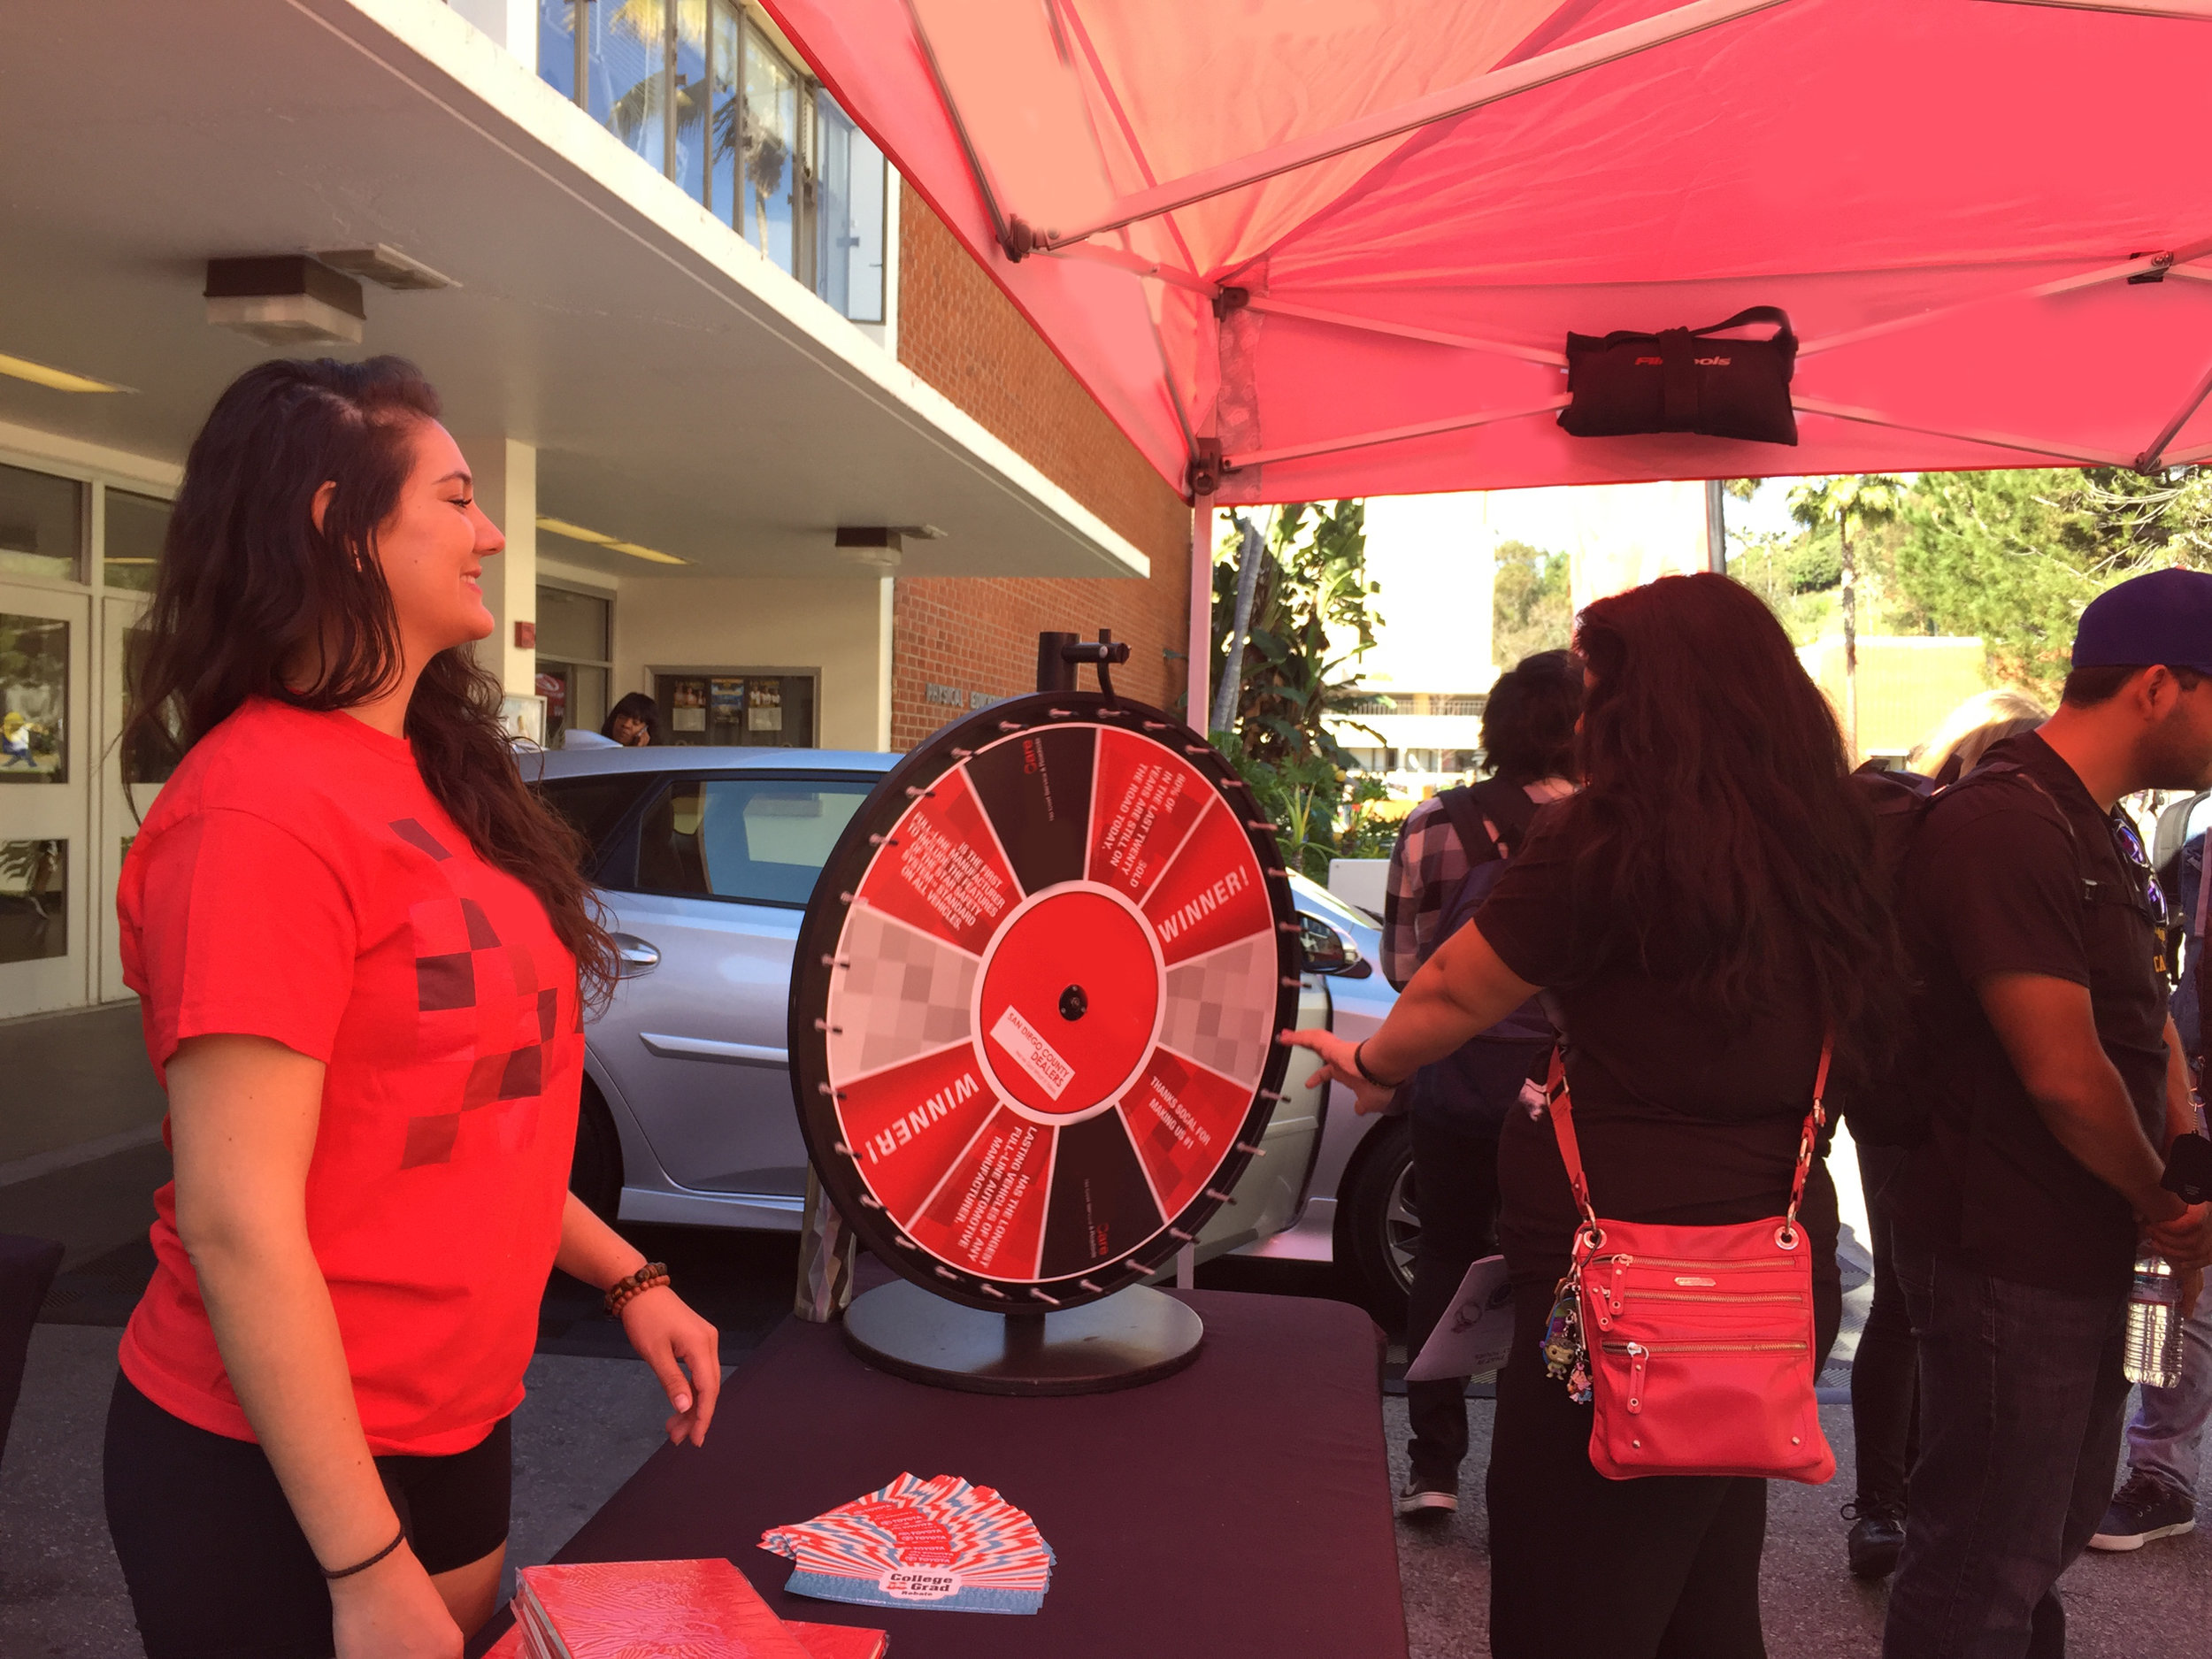 Students gather for the chance to win a prize at the advertisers prize wheel!